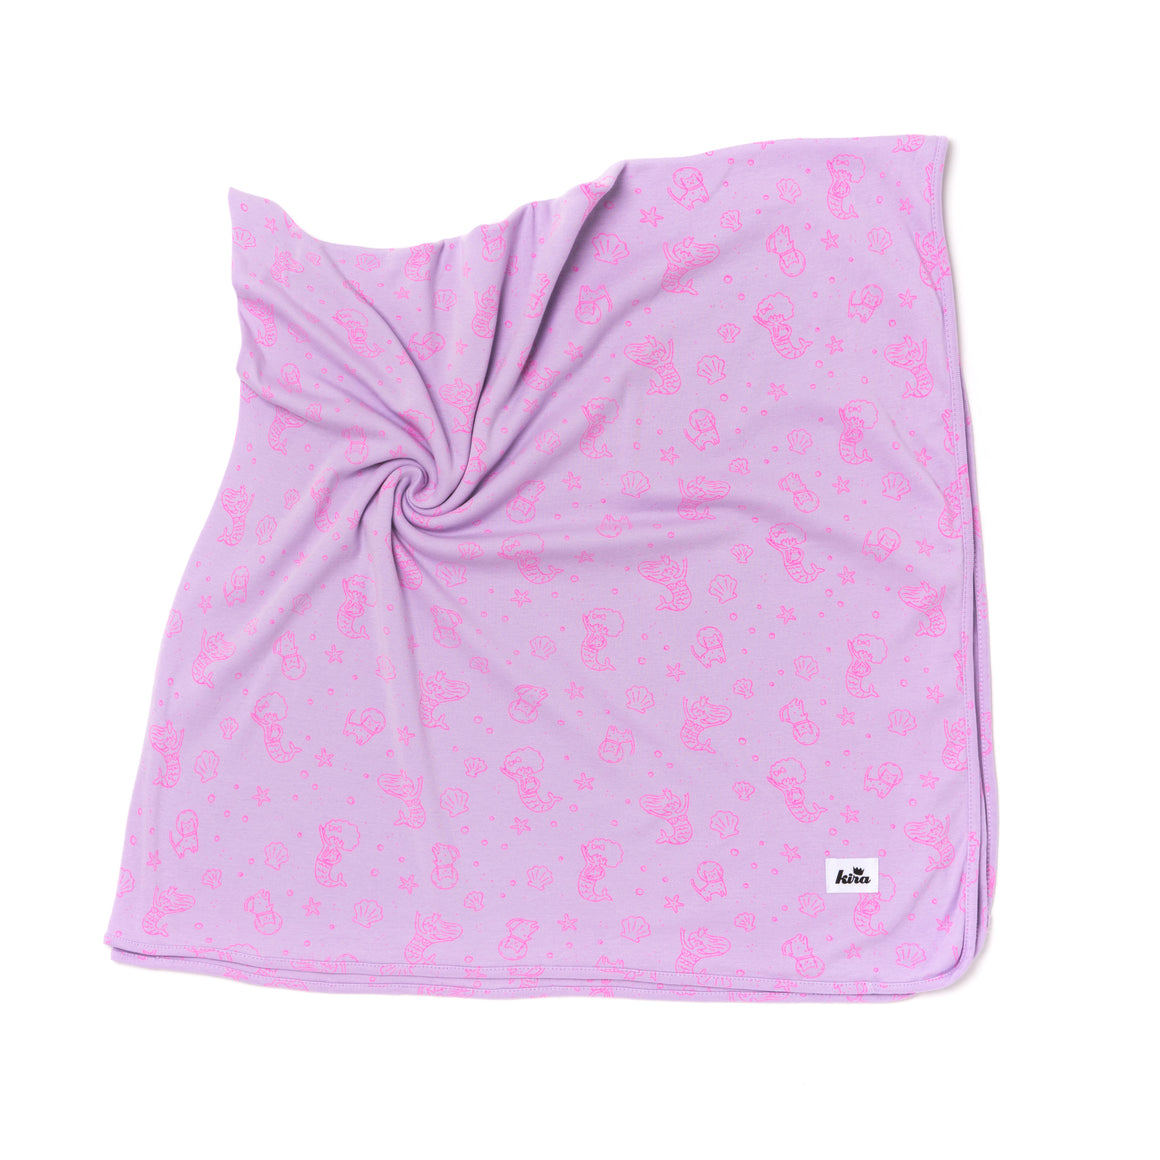 Mermaid Print Blanket, Pastel Violet